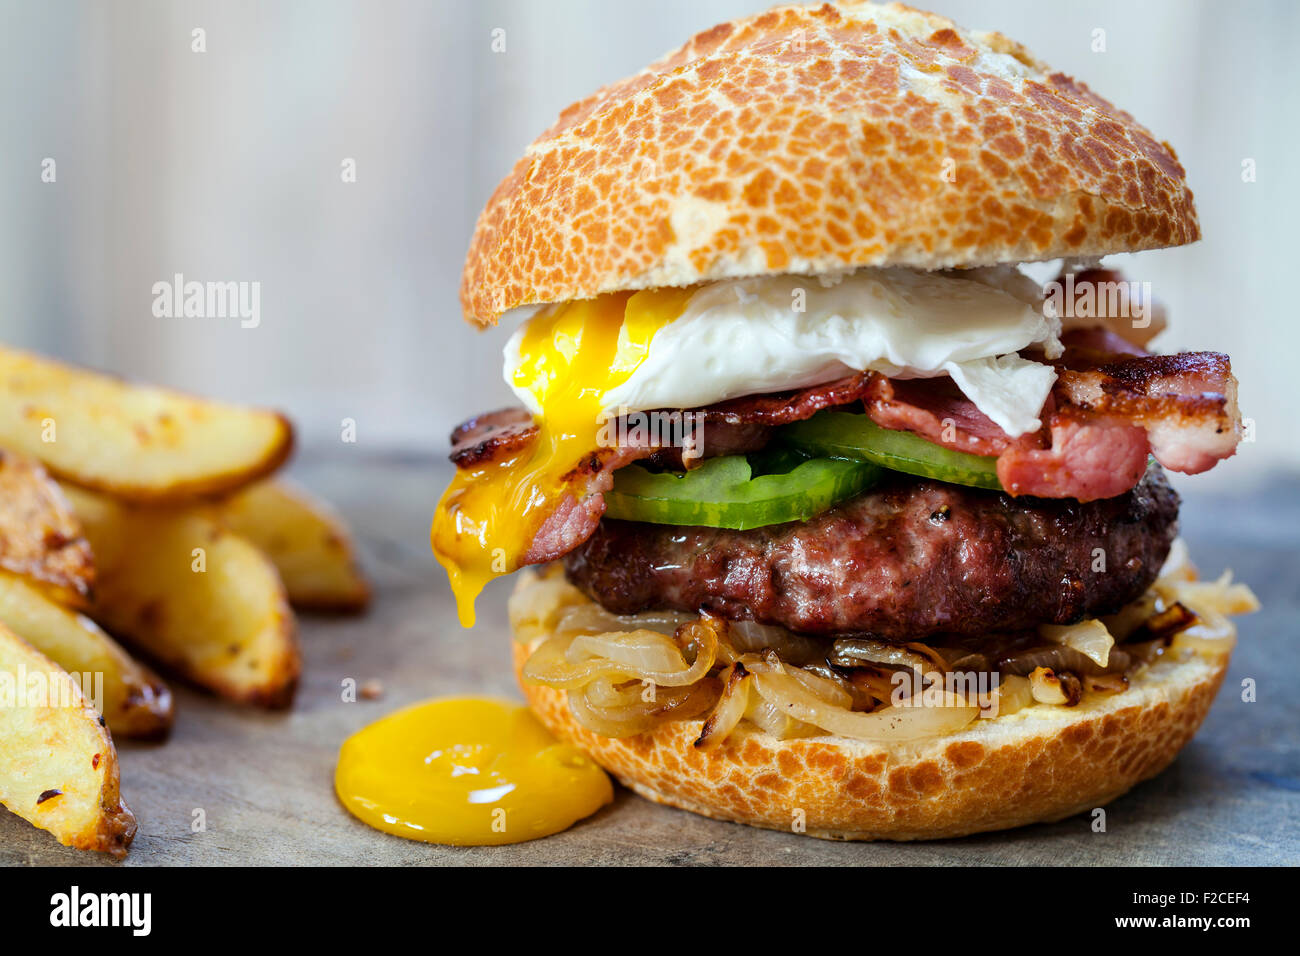 Beef burger with bacon and poached egg - Stock Image